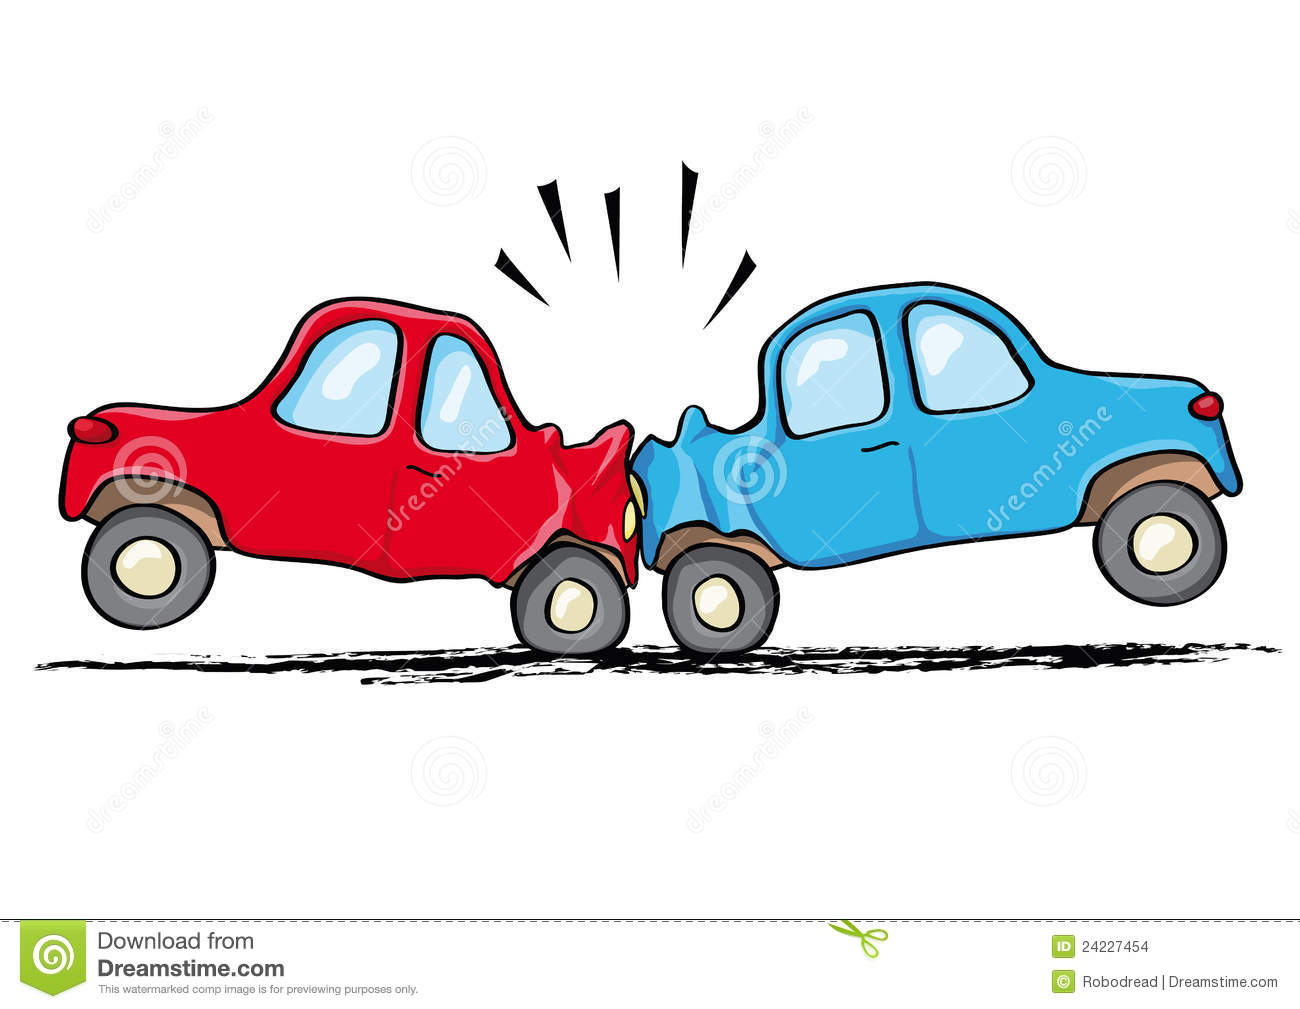 Car accident stock vector. Illustration of damage, auto - 24227454